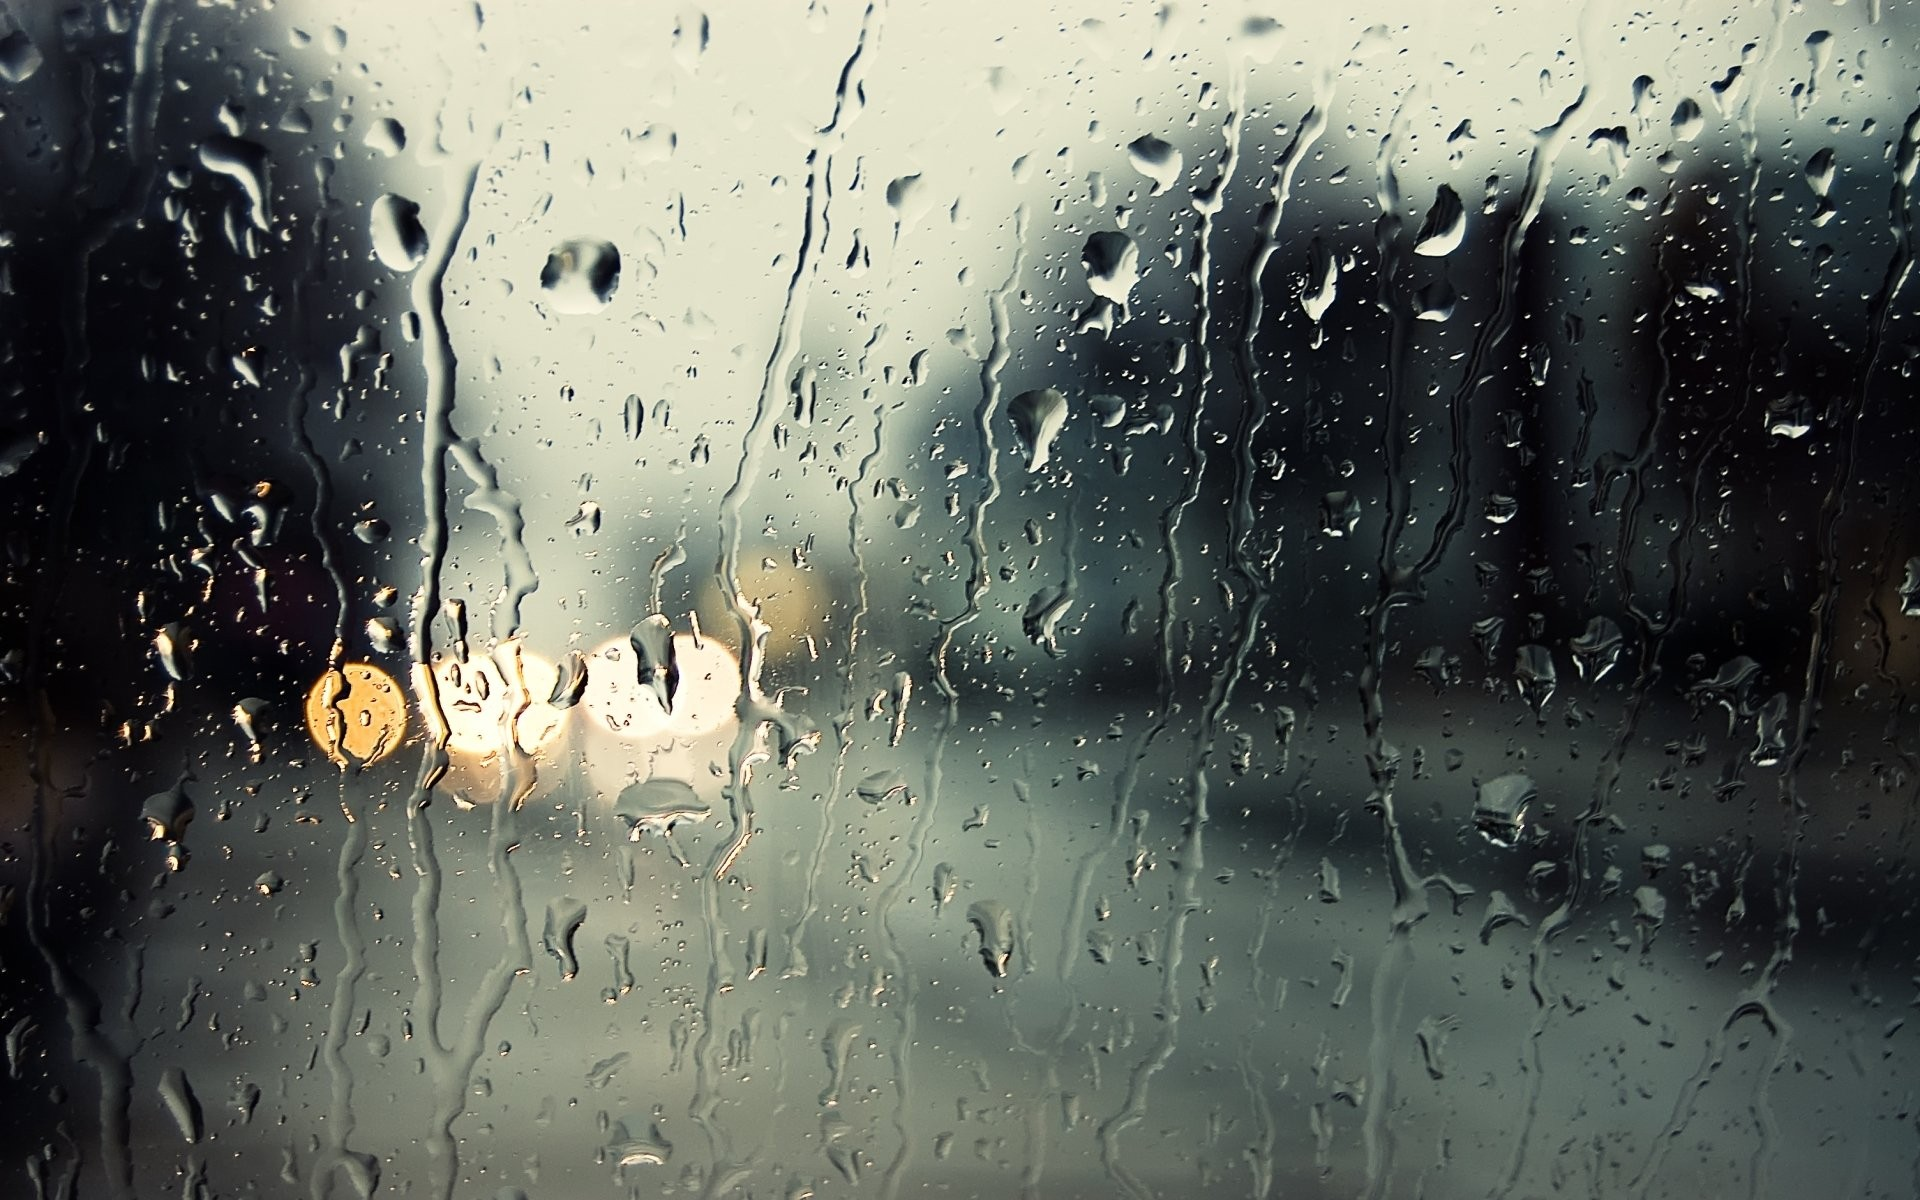 rain wallpaper ·① download free stunning full hd wallpapers for